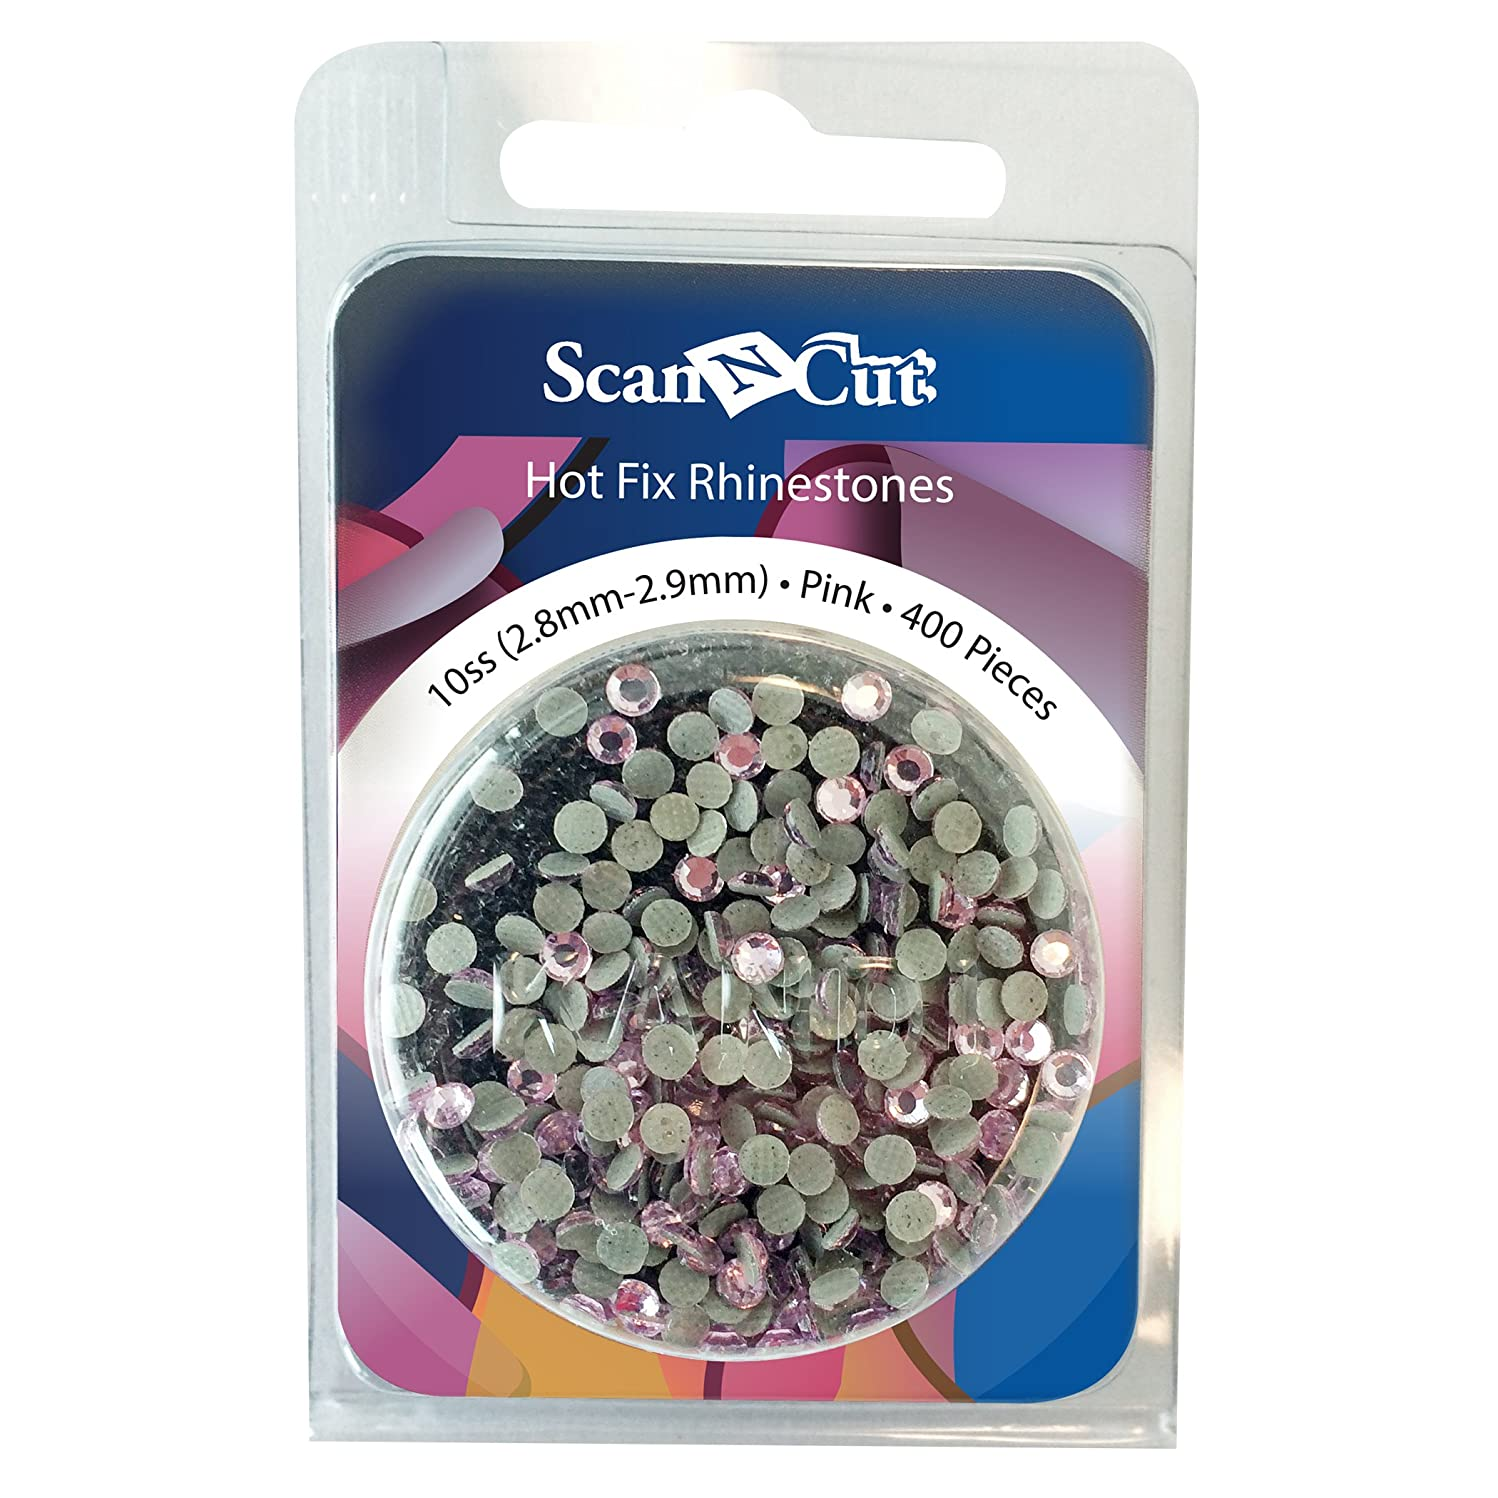 Brother ScanNCut CARS10P Rhinestone Refill Pack 10SS (2.8 mm - 2.9 mm) - Pink